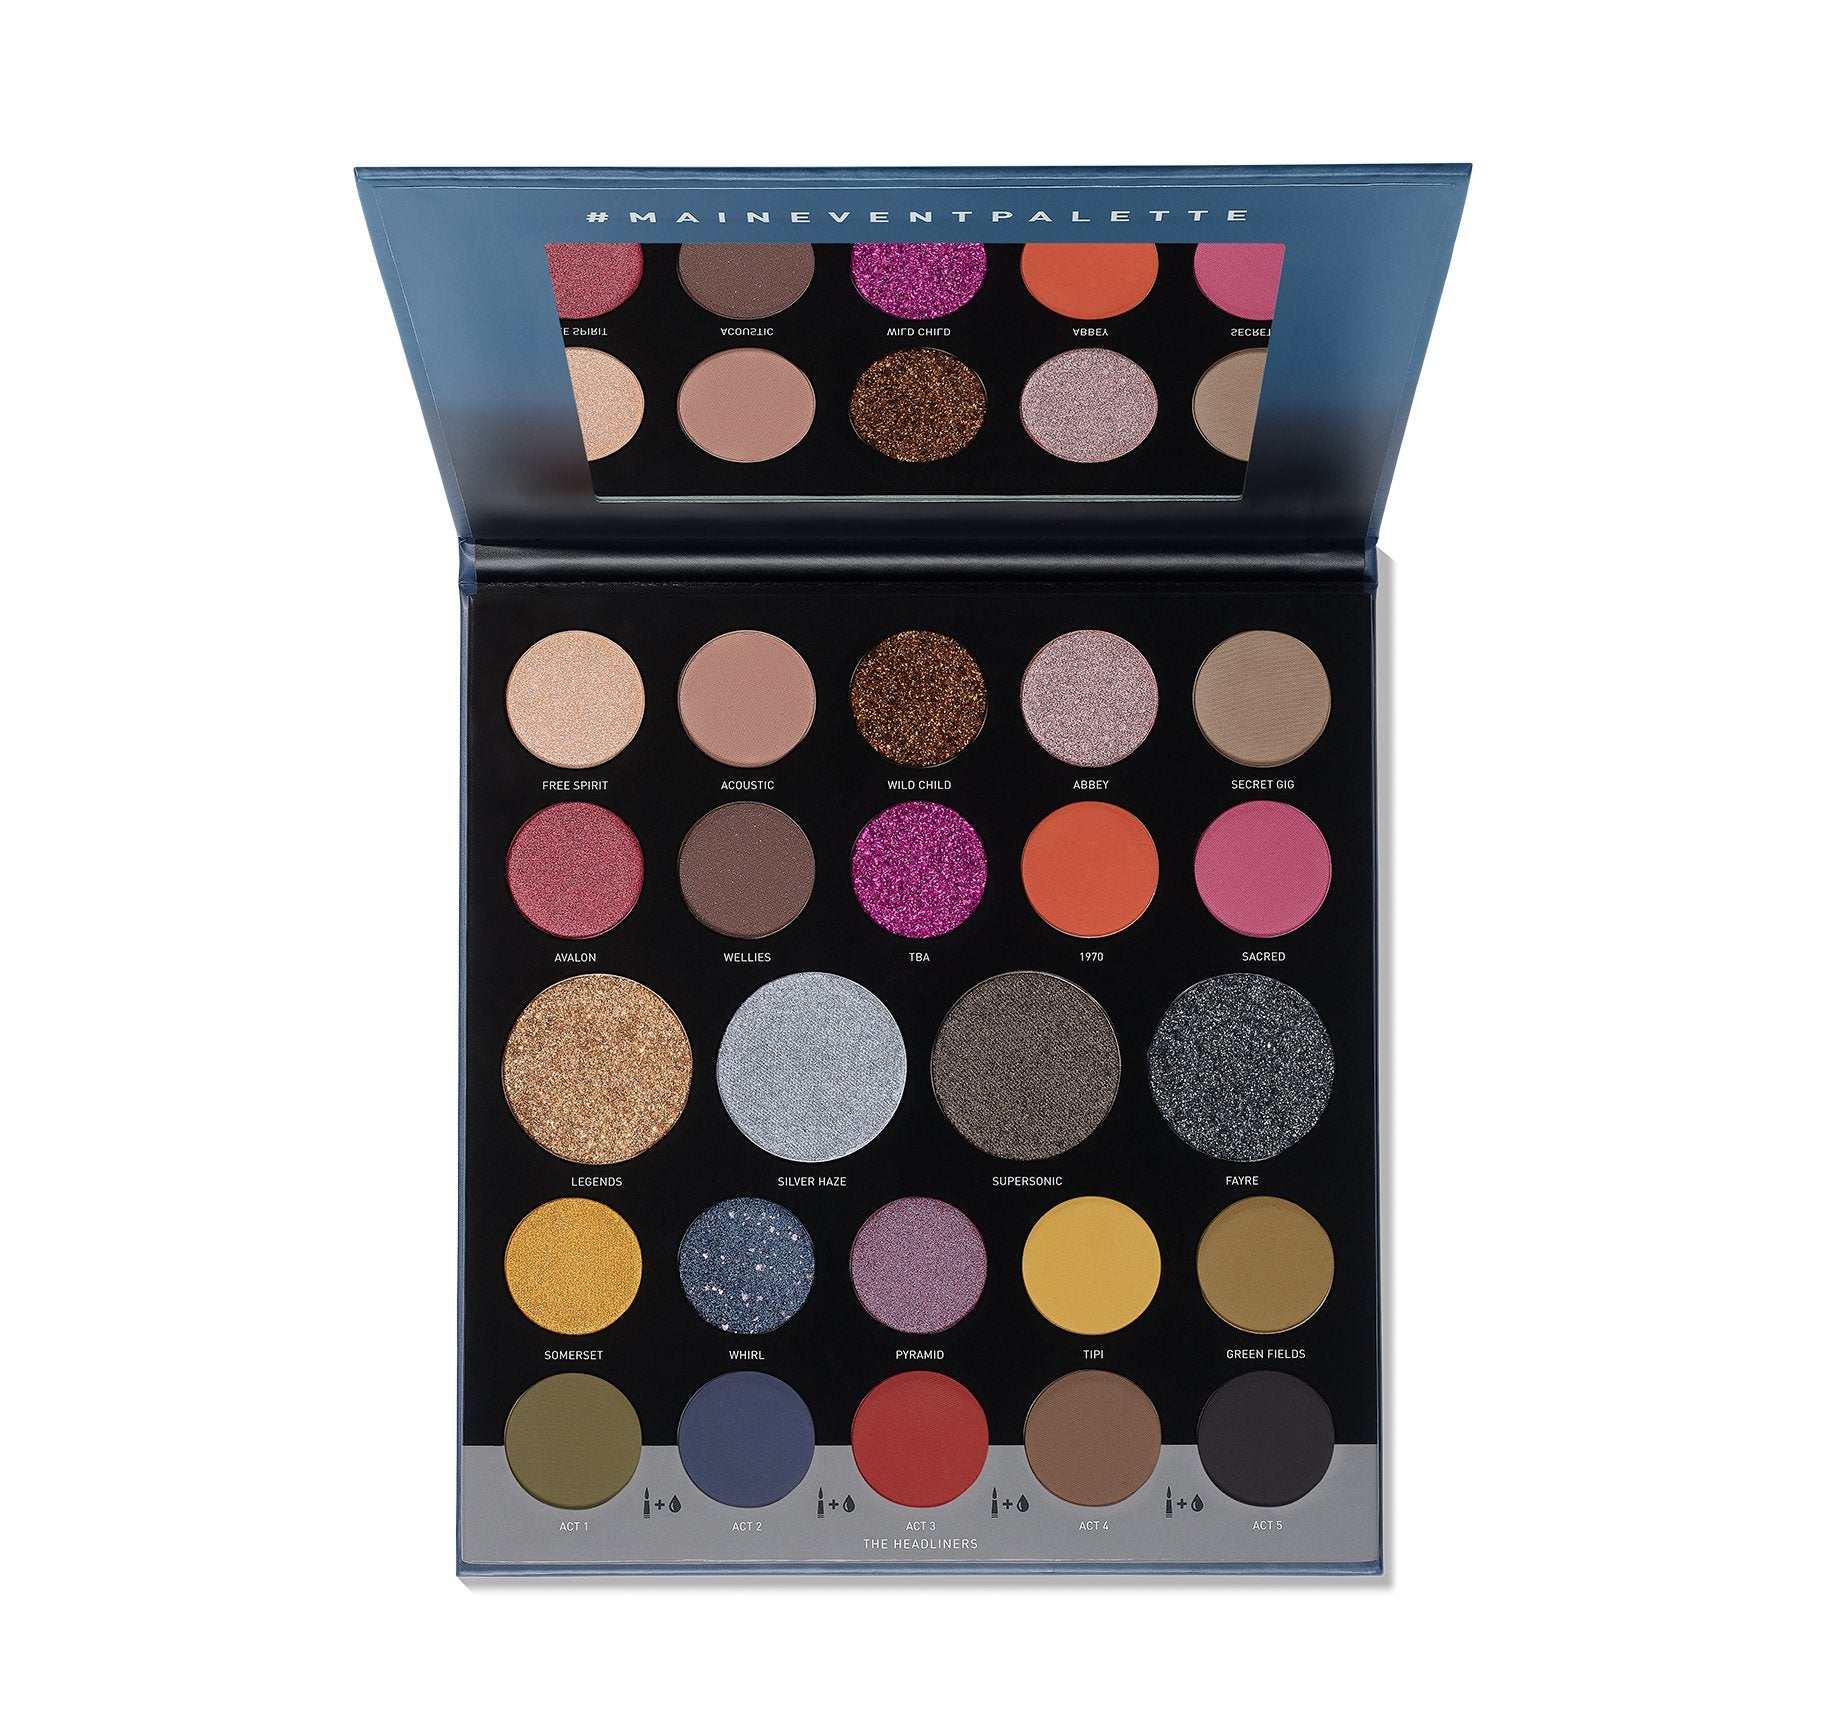 24M MAIN EVENT ARTISTRY PALETTE, view larger image